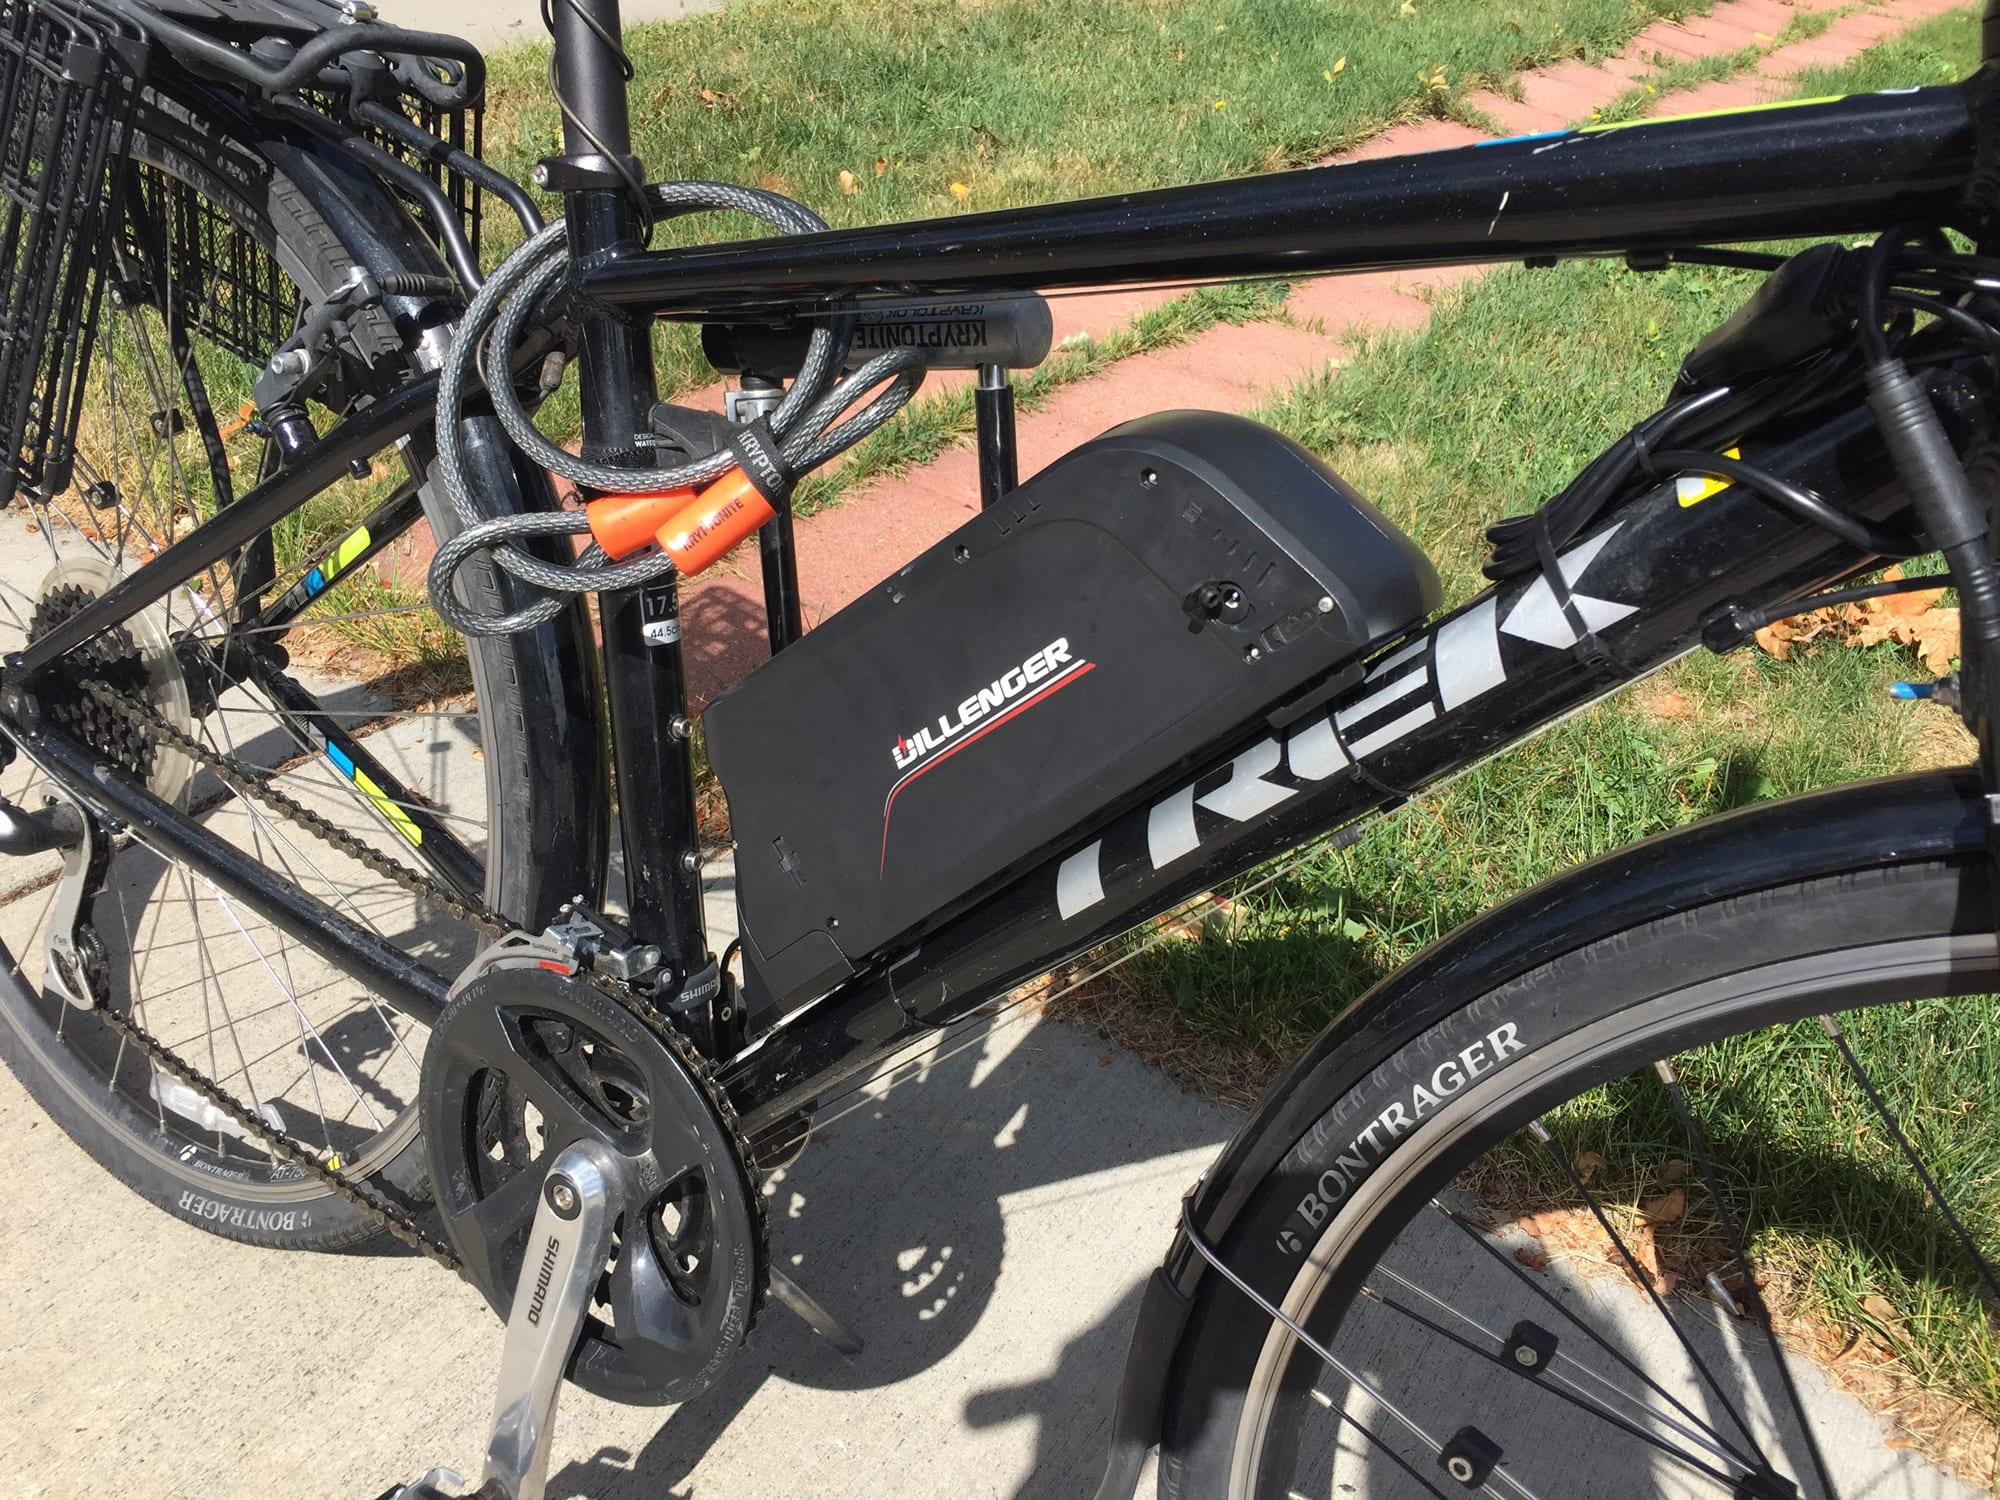 Dillenger Street Legal Electric Bike Kit Review Prices